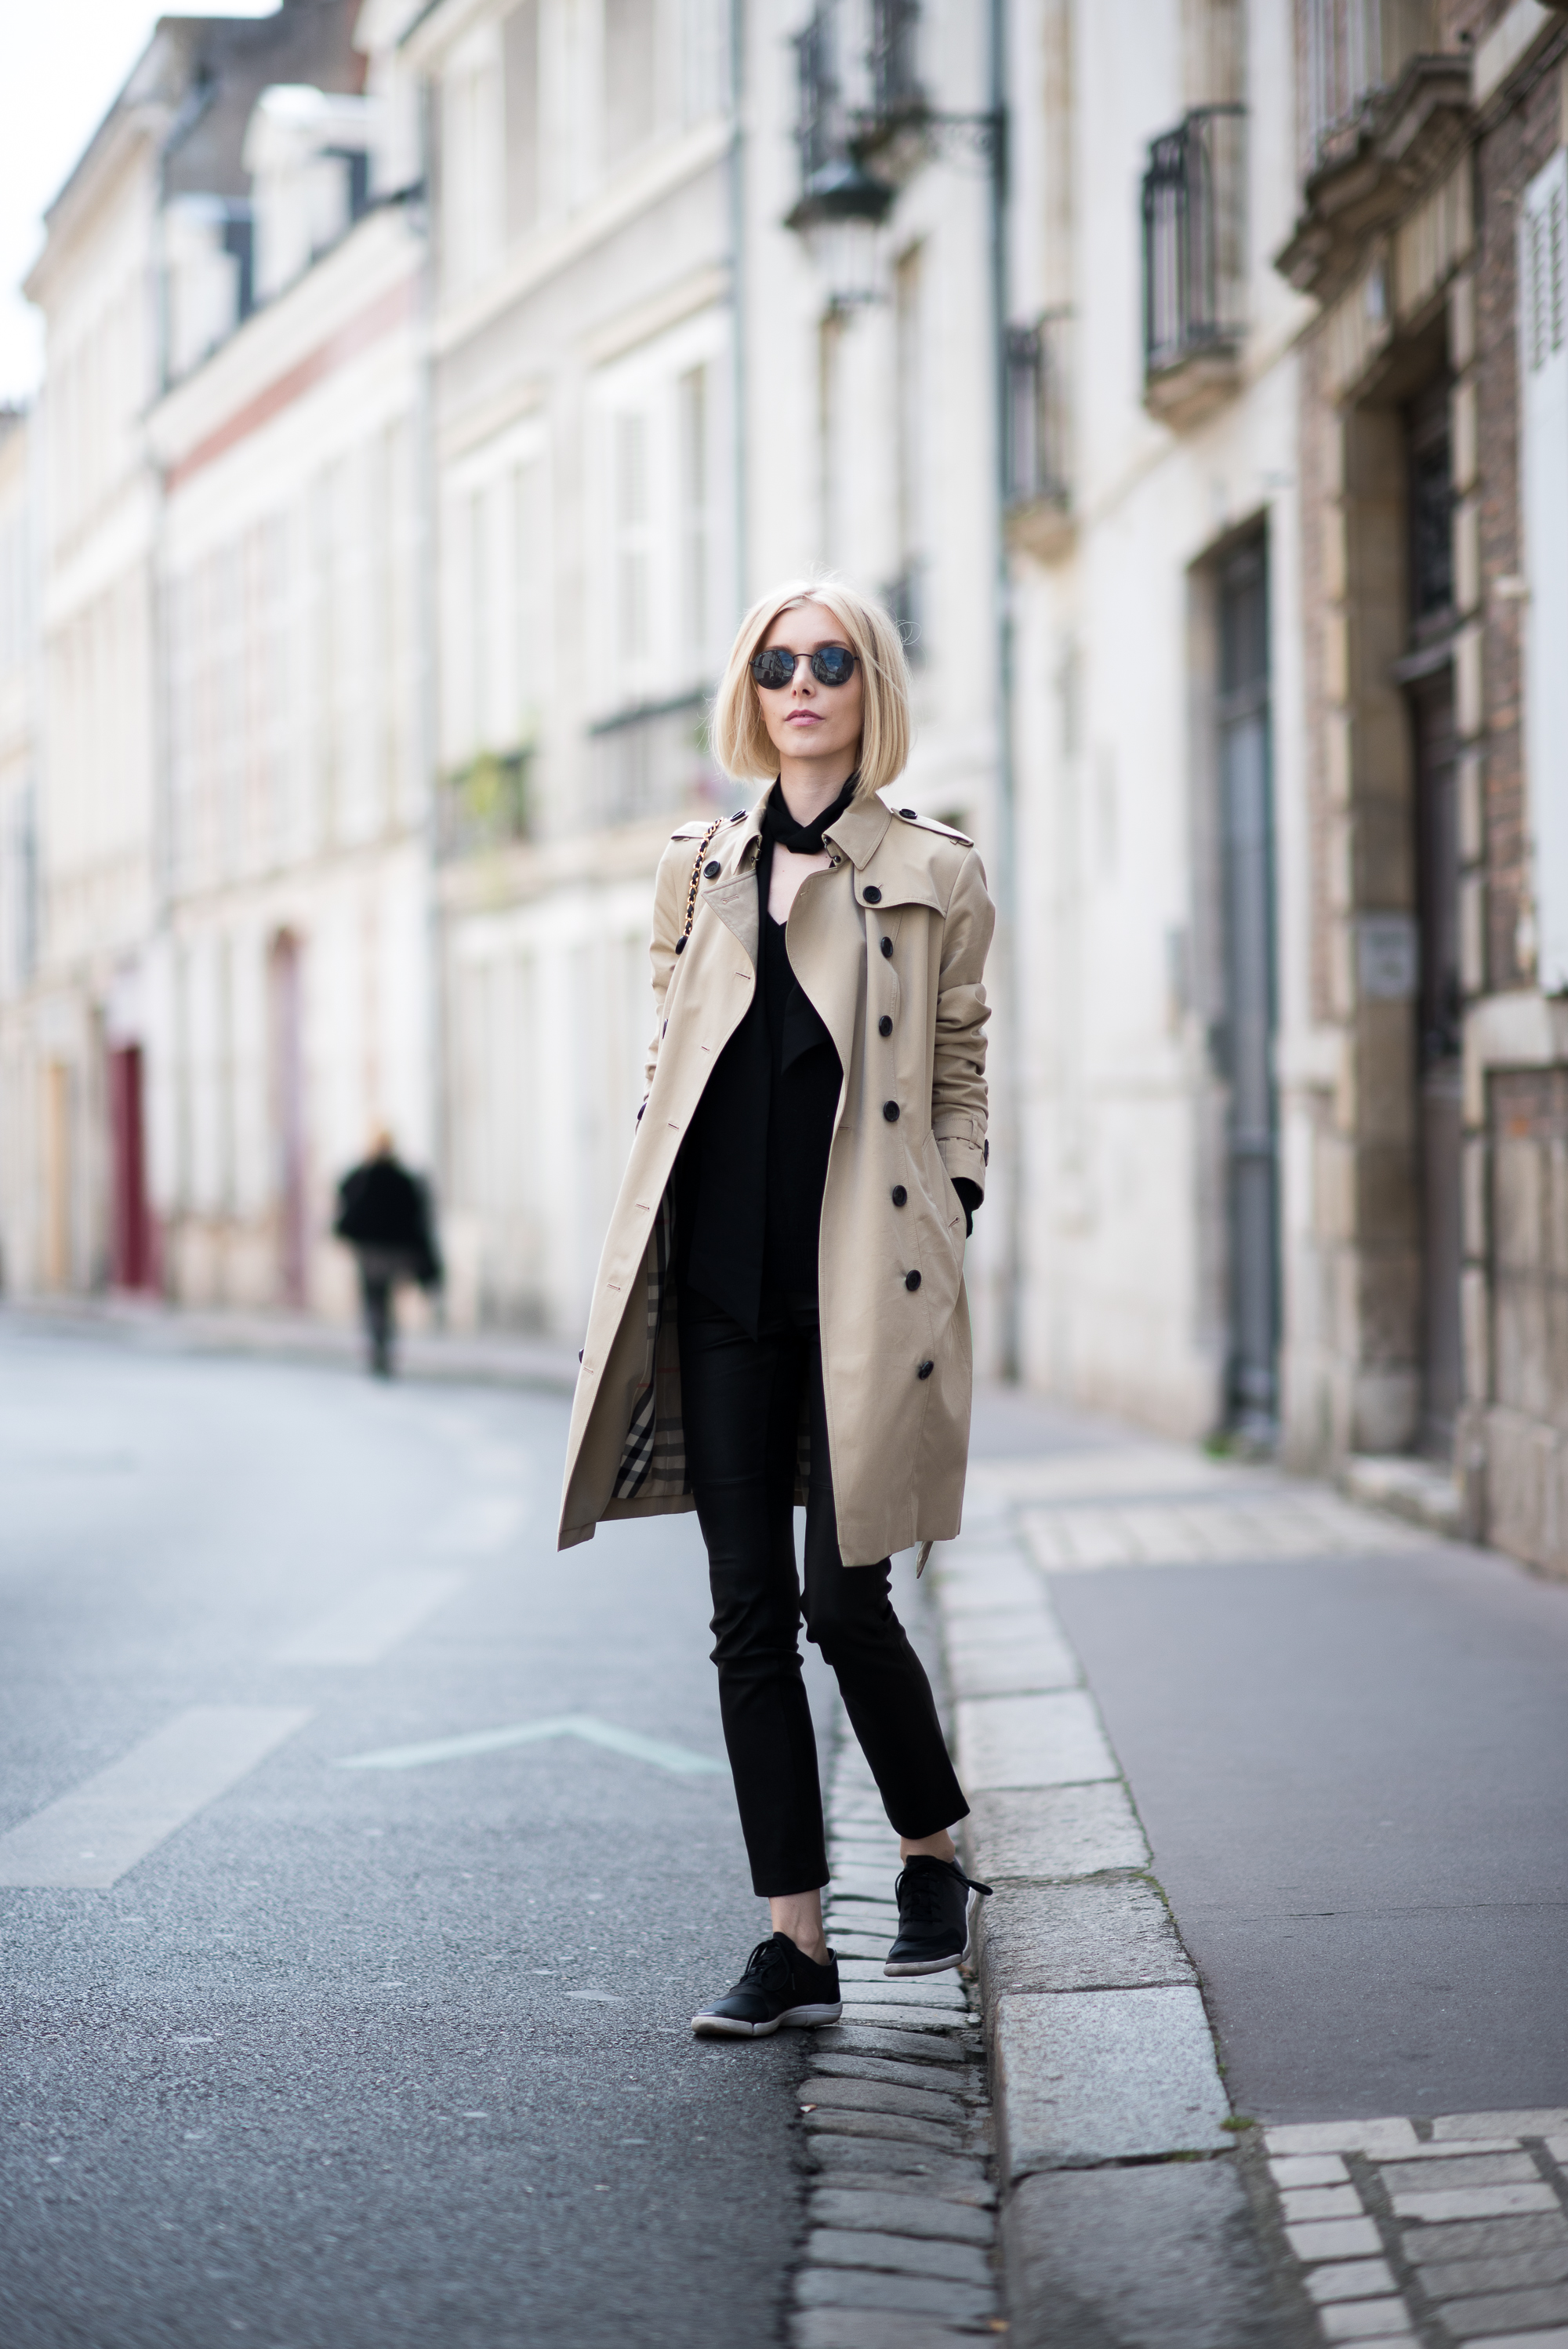 burberry-trench-outfit-5